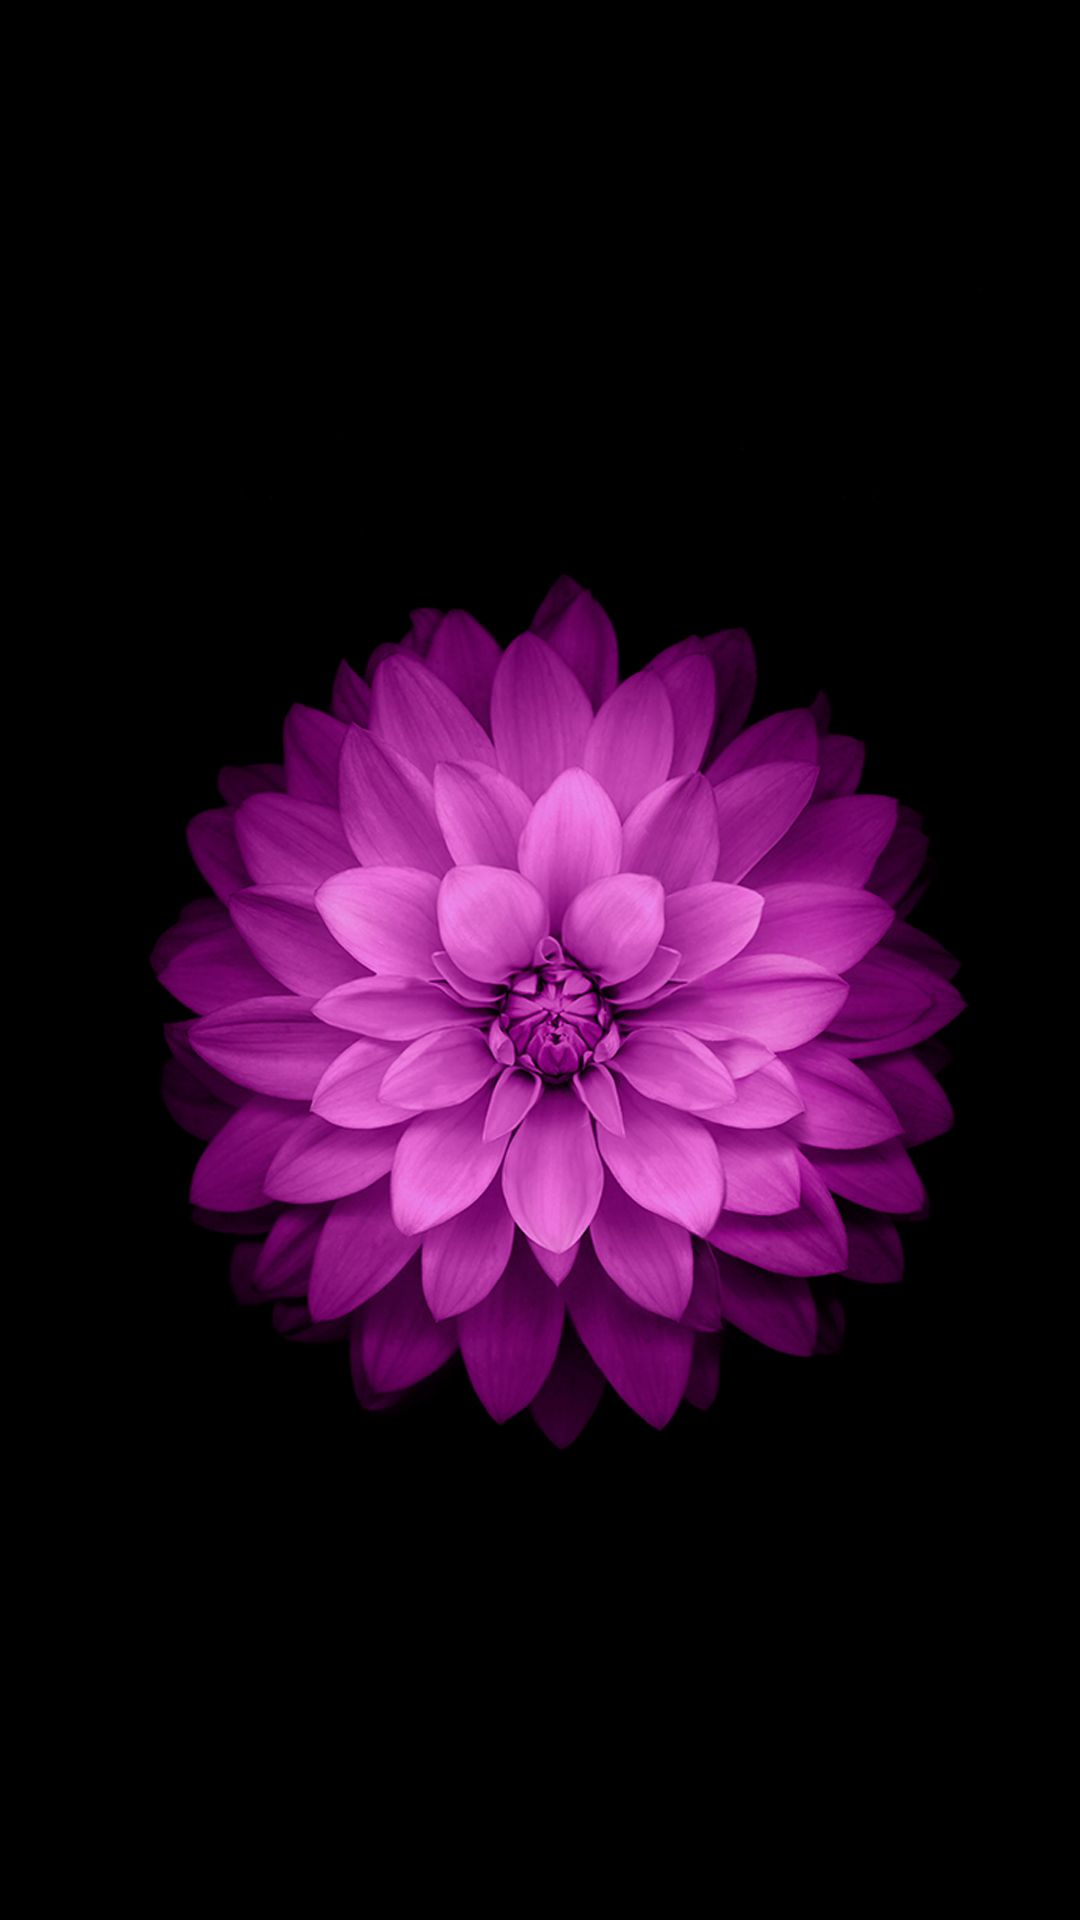 Here Is One Of The Official Hd Nature Wallpaper For Iphone 6s Plus With Purple Lotus Flower Flower Iphone Wallpaper Iphone 6 Plus Wallpaper Iphone 5s Wallpaper